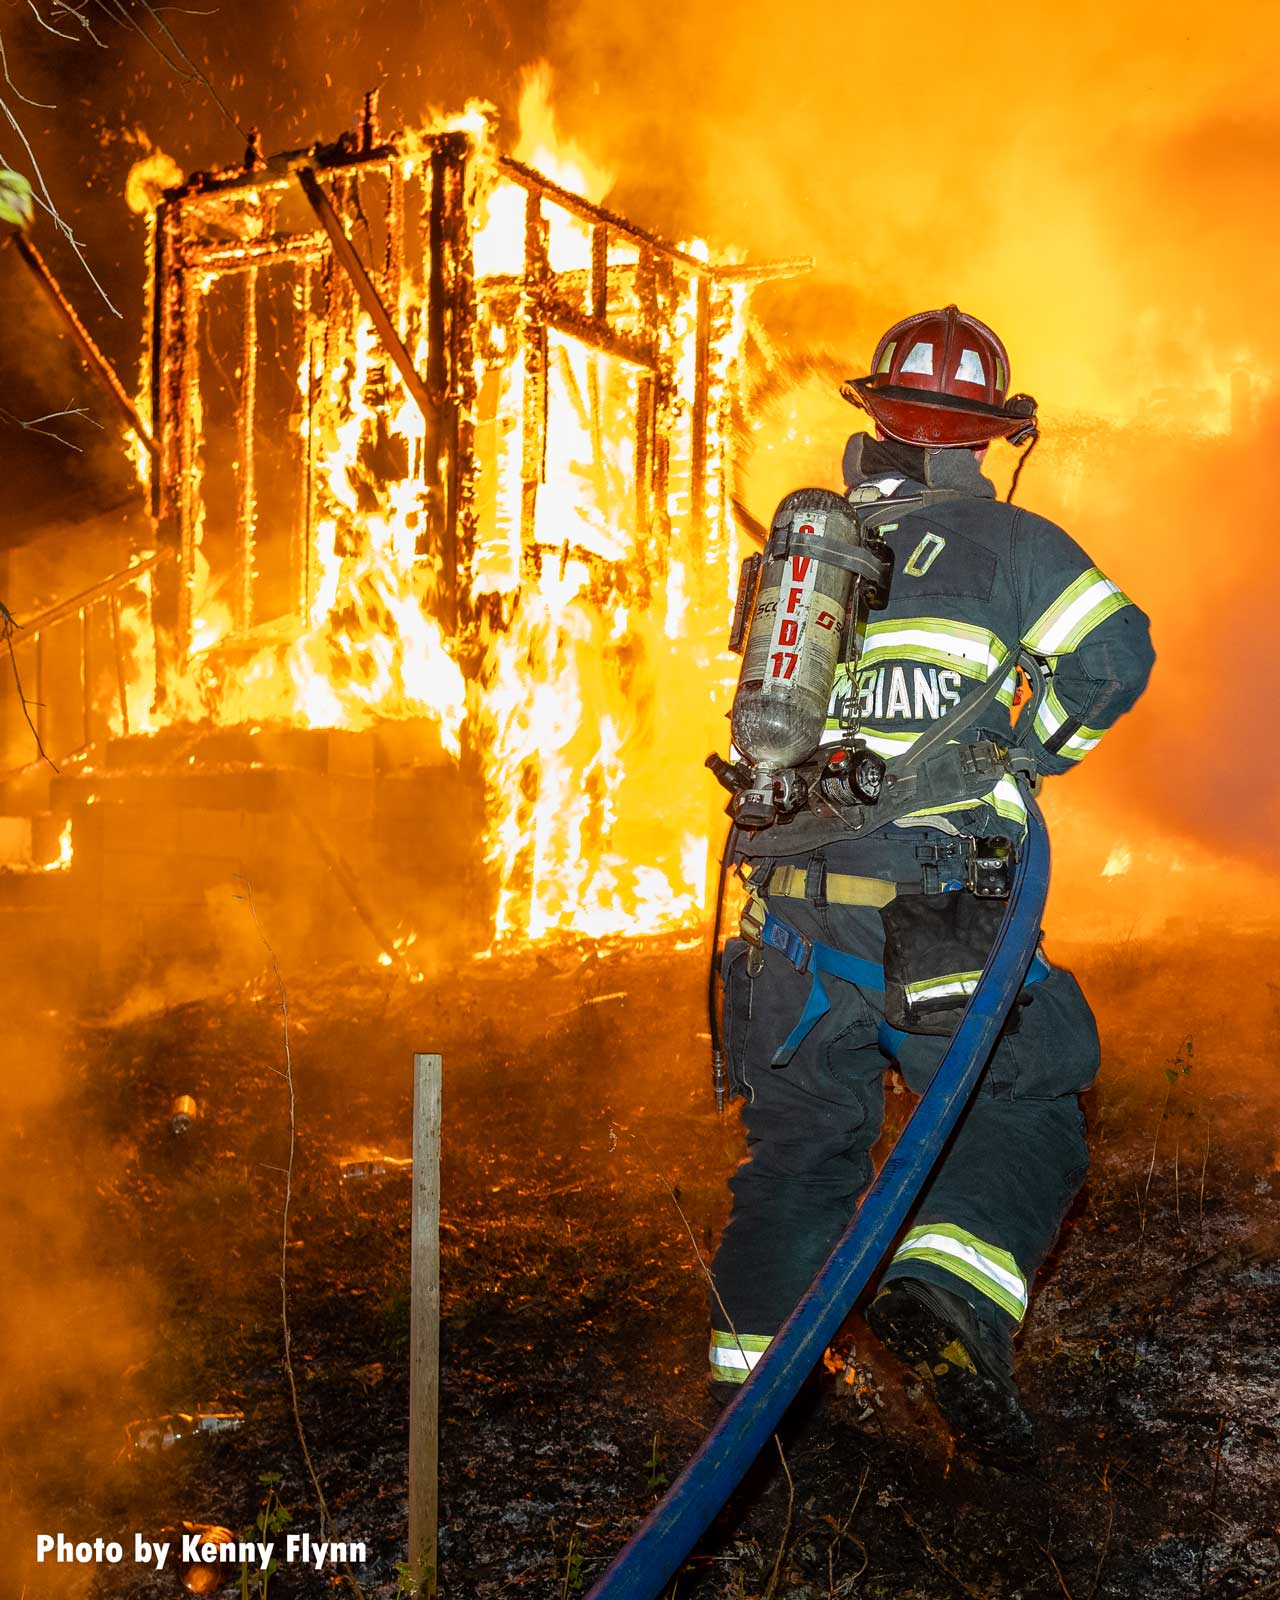 Columbian Engine Co. firefighter John Conjura advances a second hoseline to help extinguish the flames.